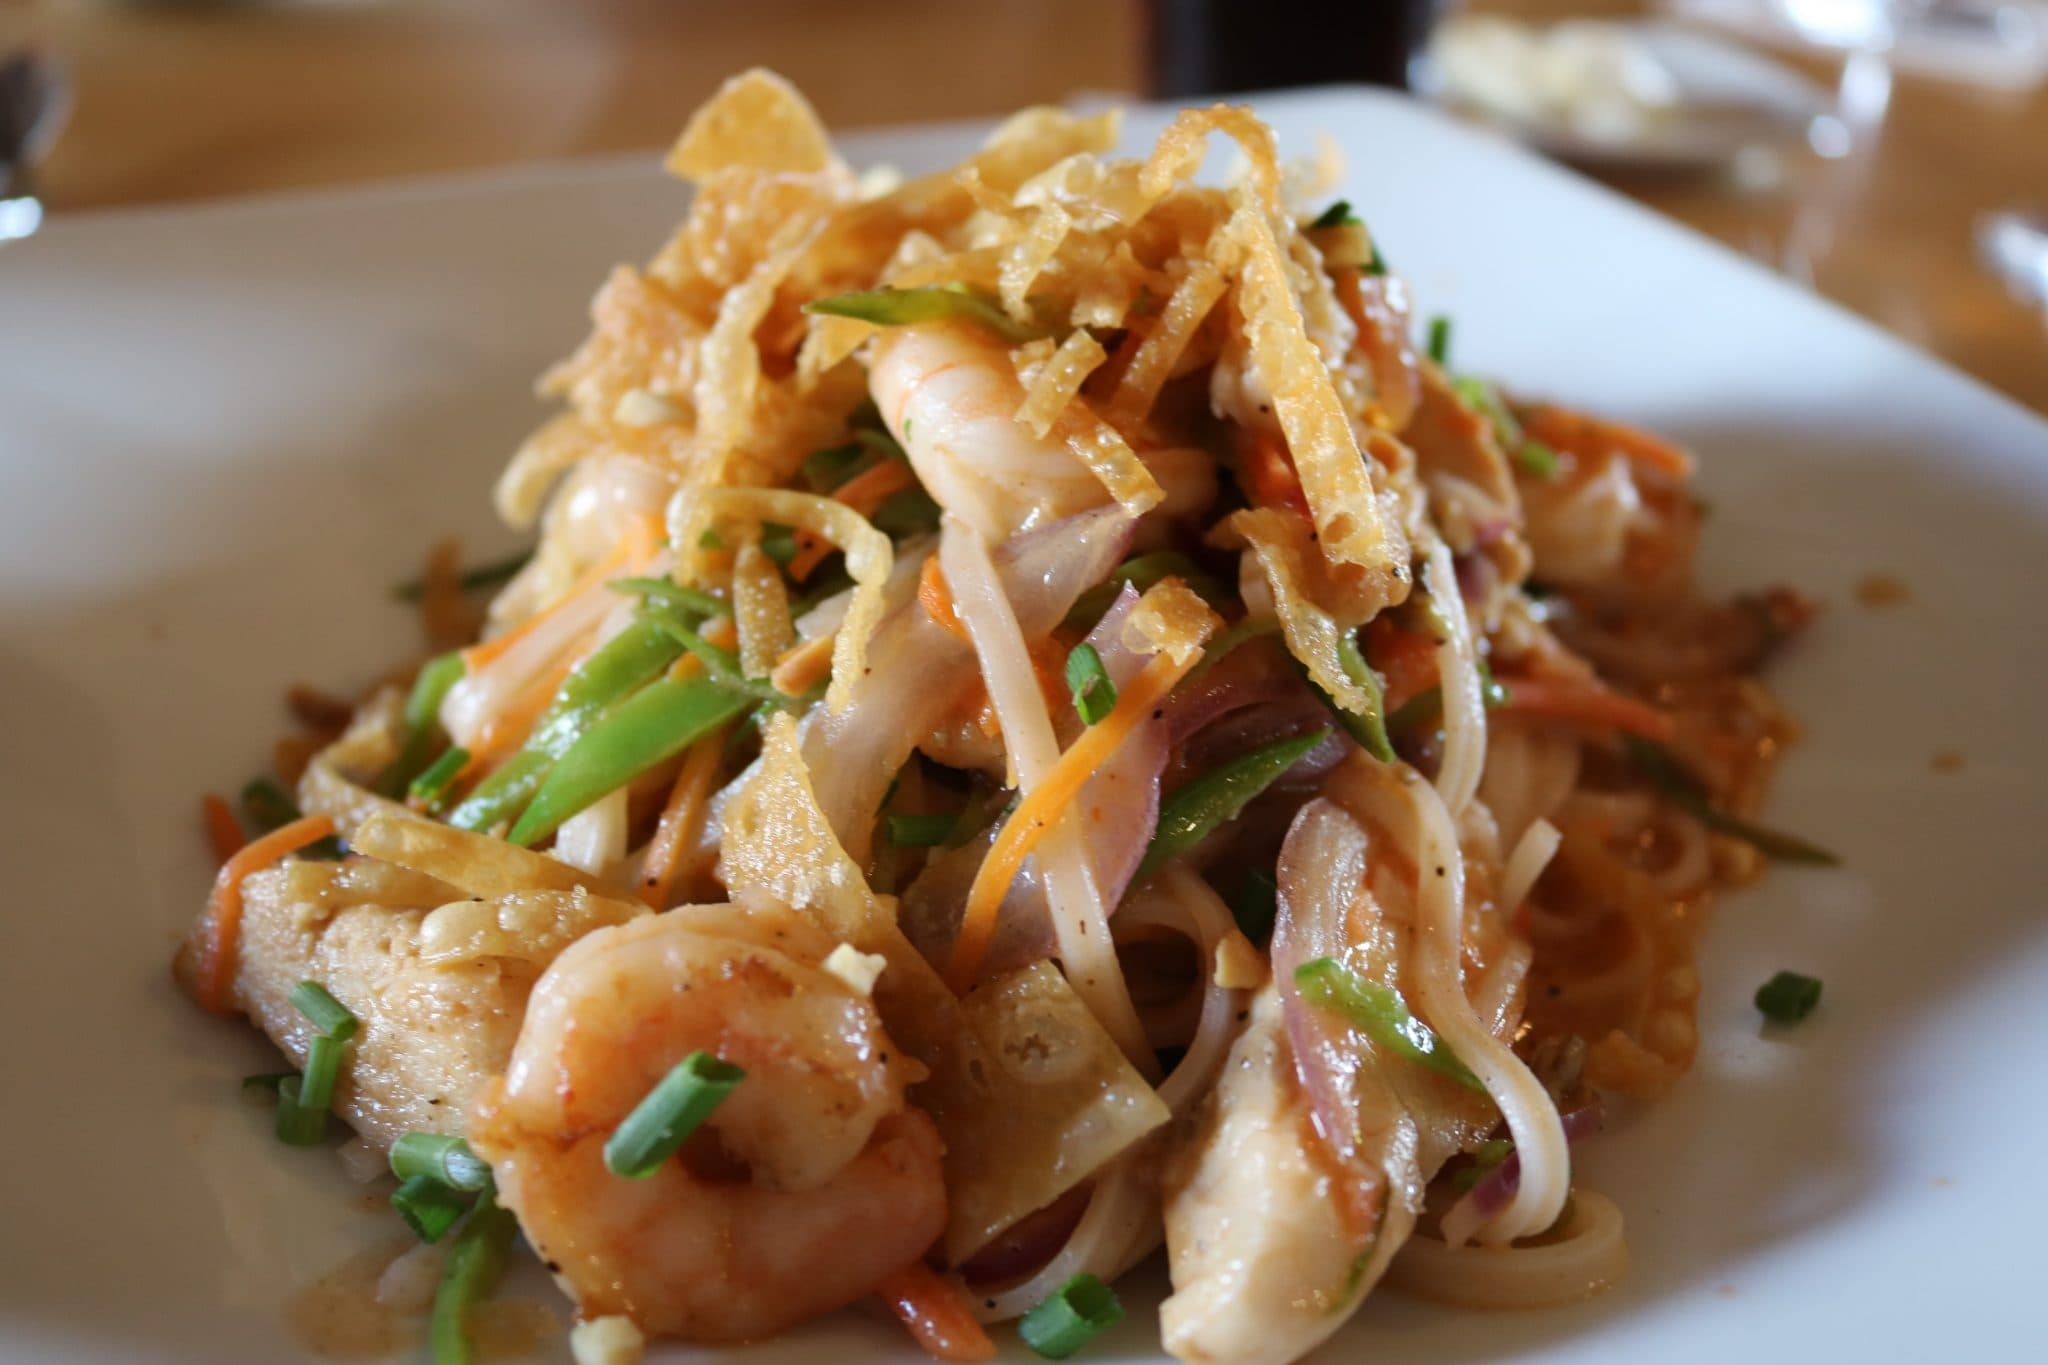 Delicious Pad Thai at Mythos restaurant